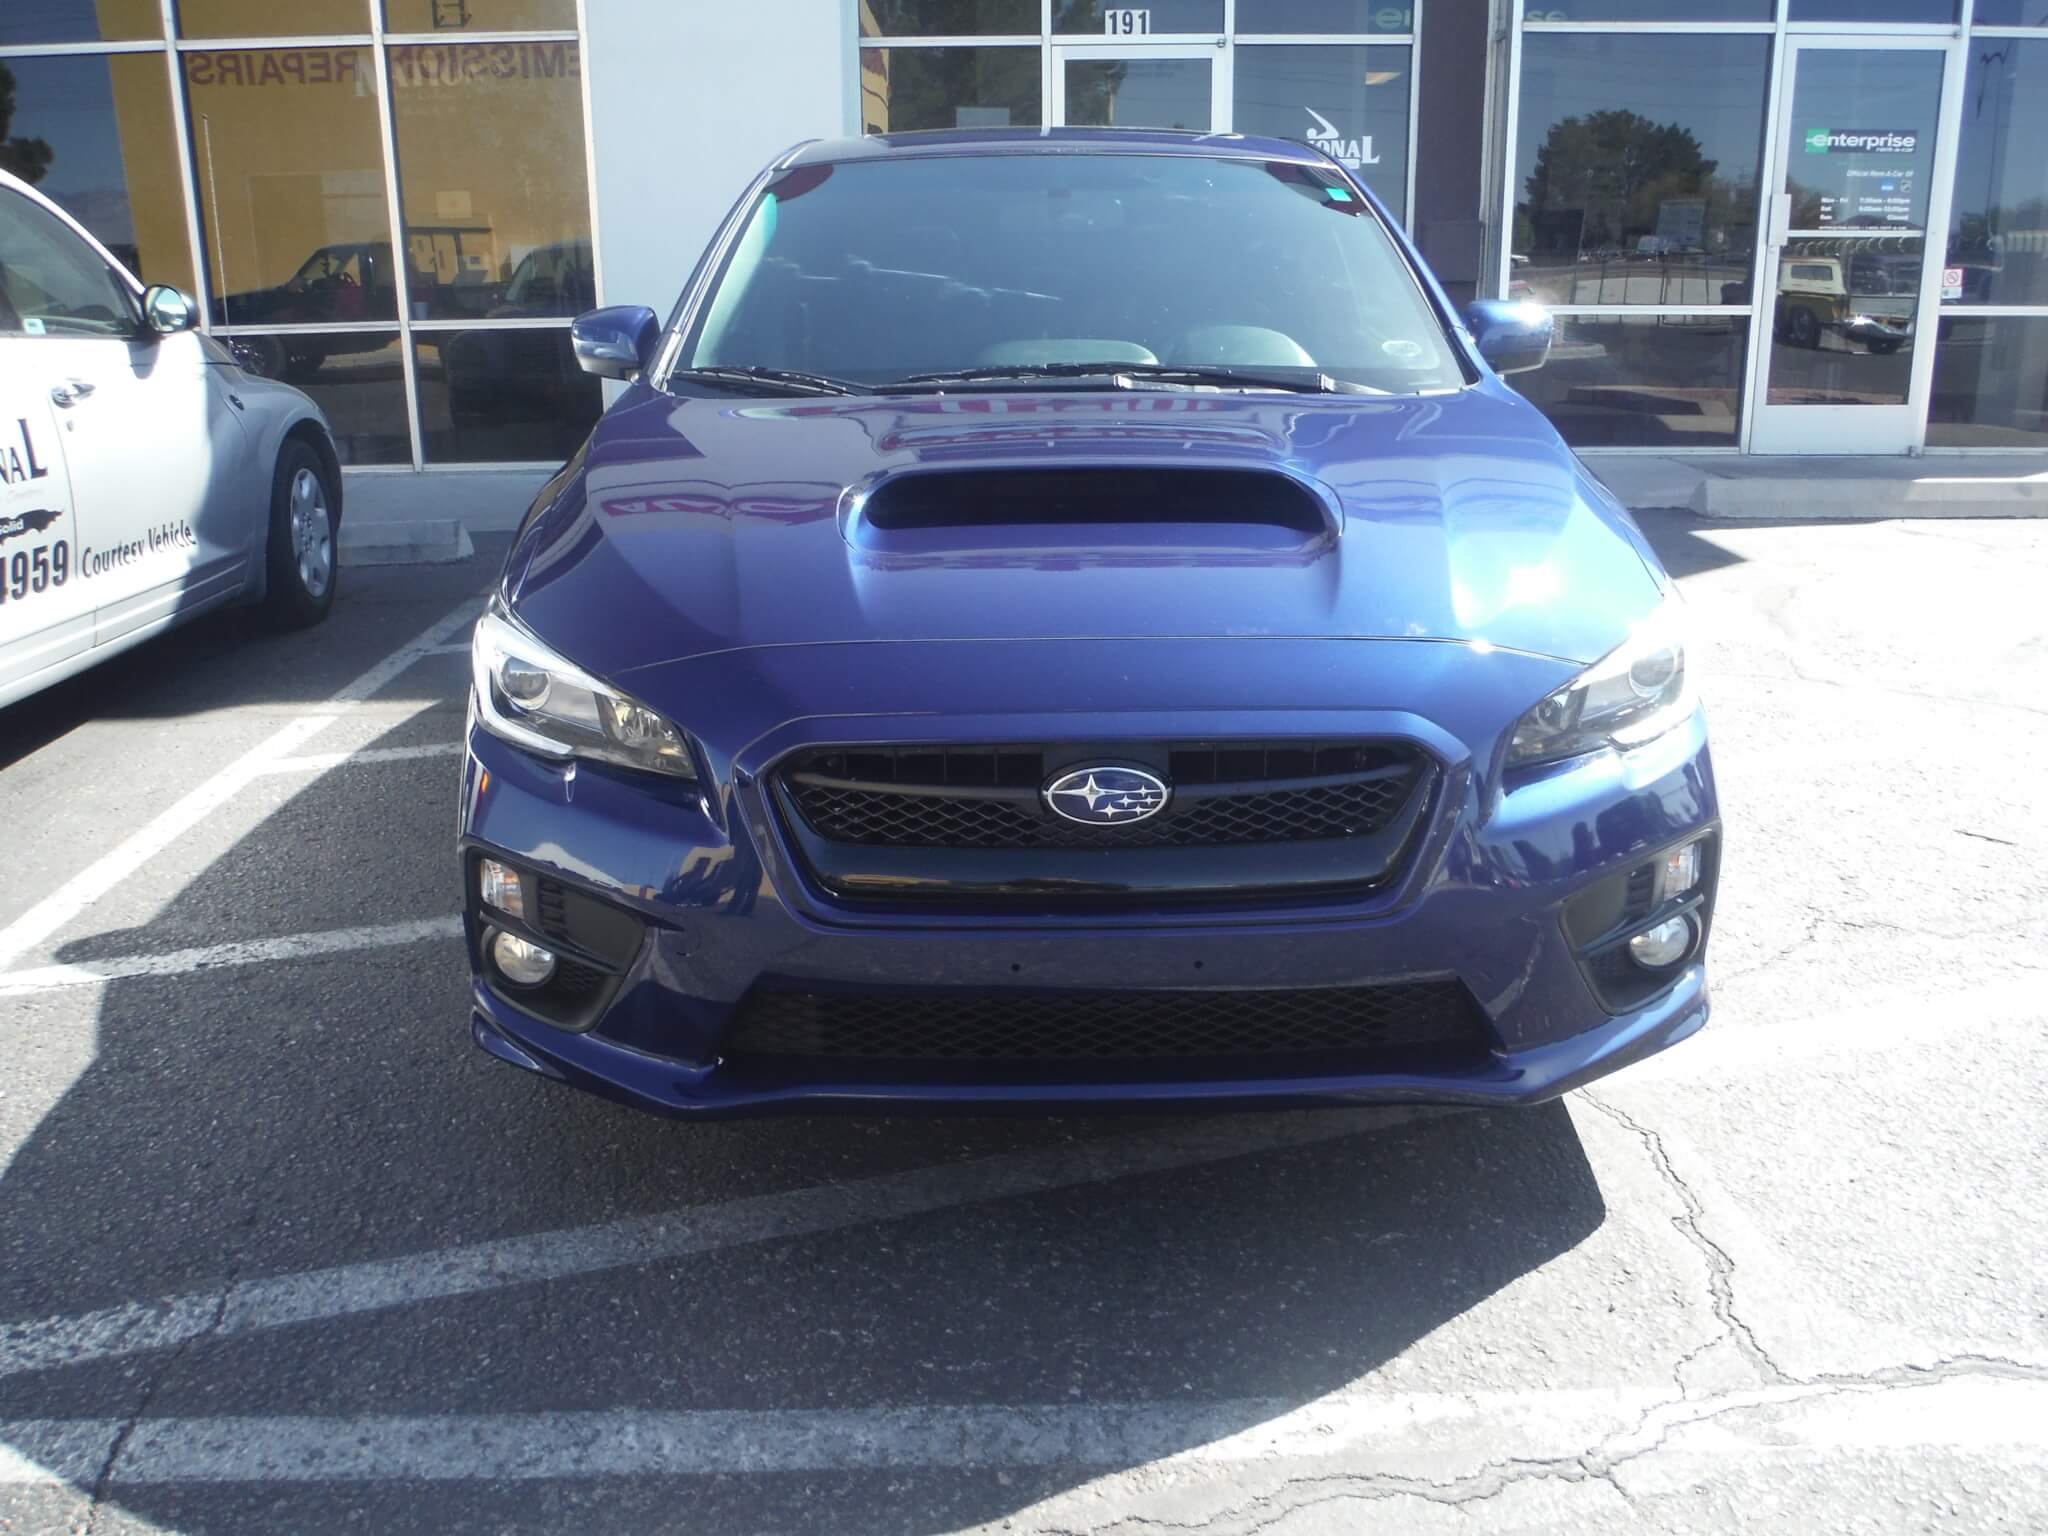 subaru wrx after body repair